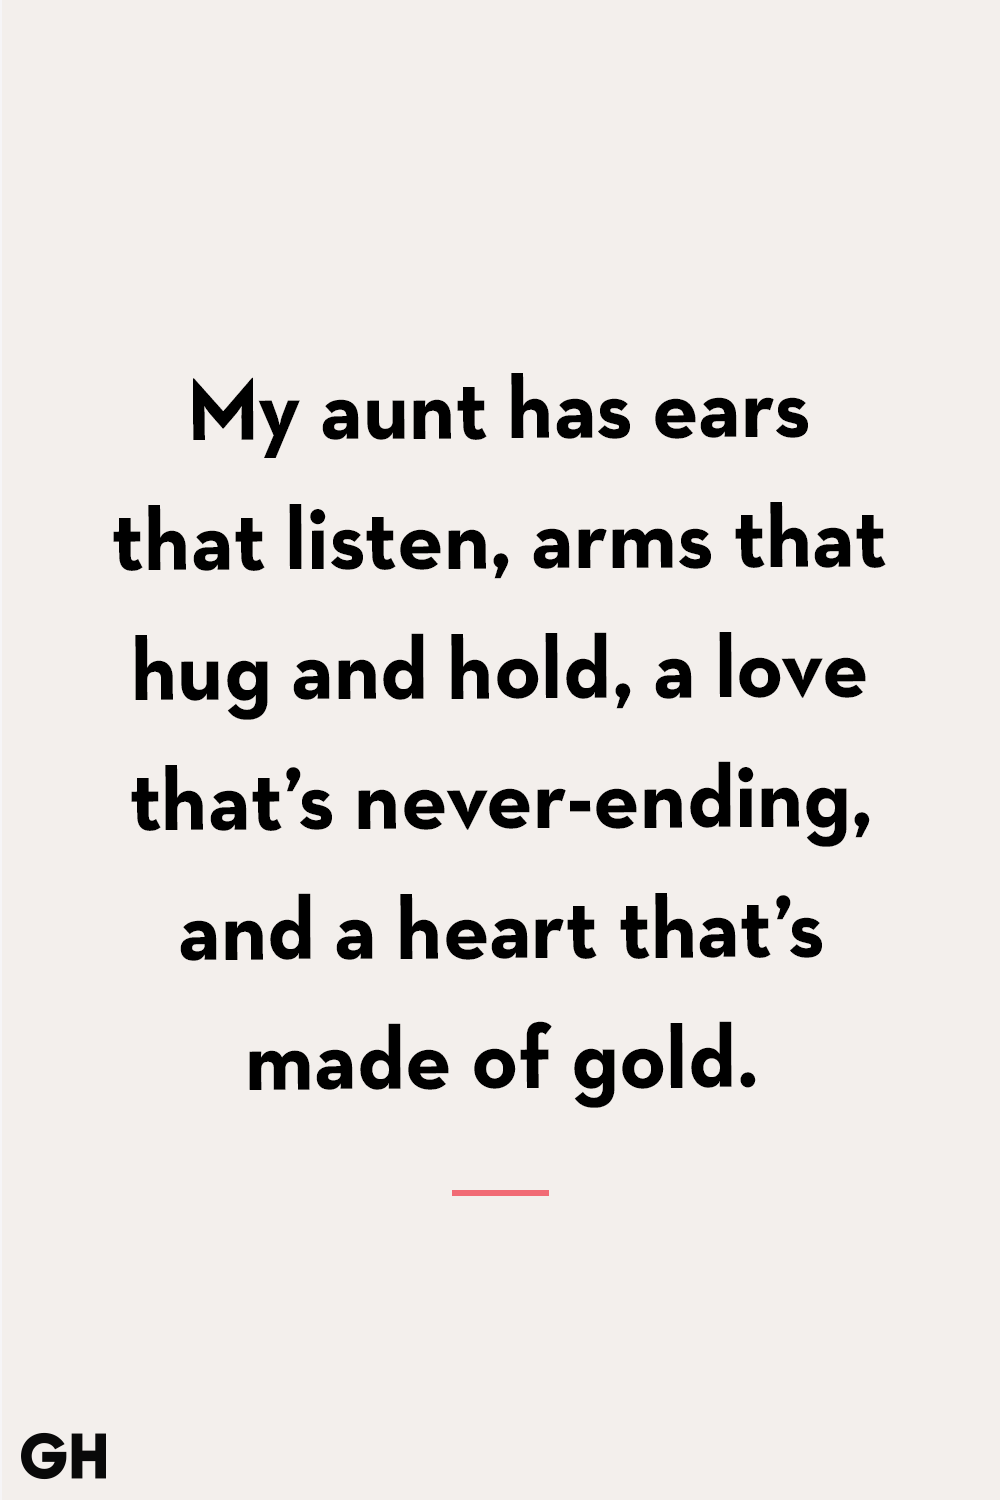 40 Beautiful Niece Quotes from Aunt to Share Love